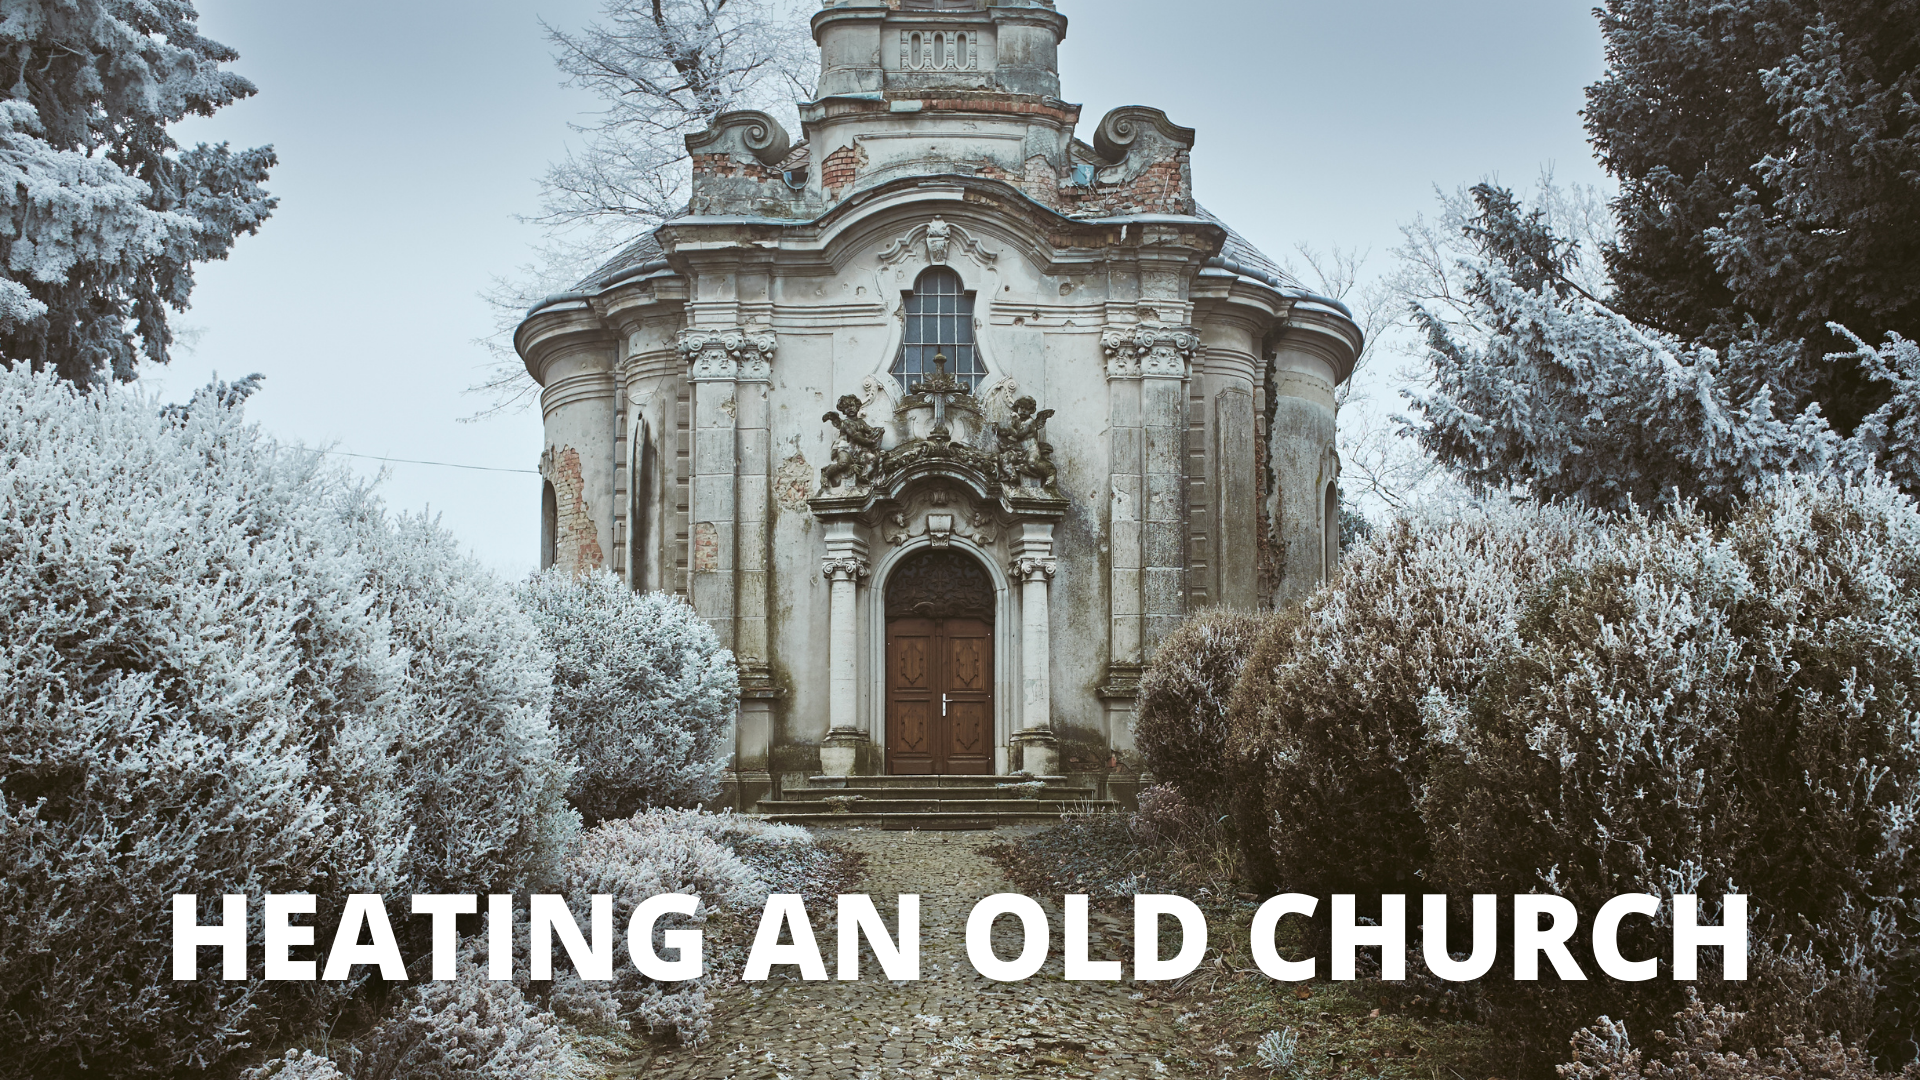 The best method to heating an old church